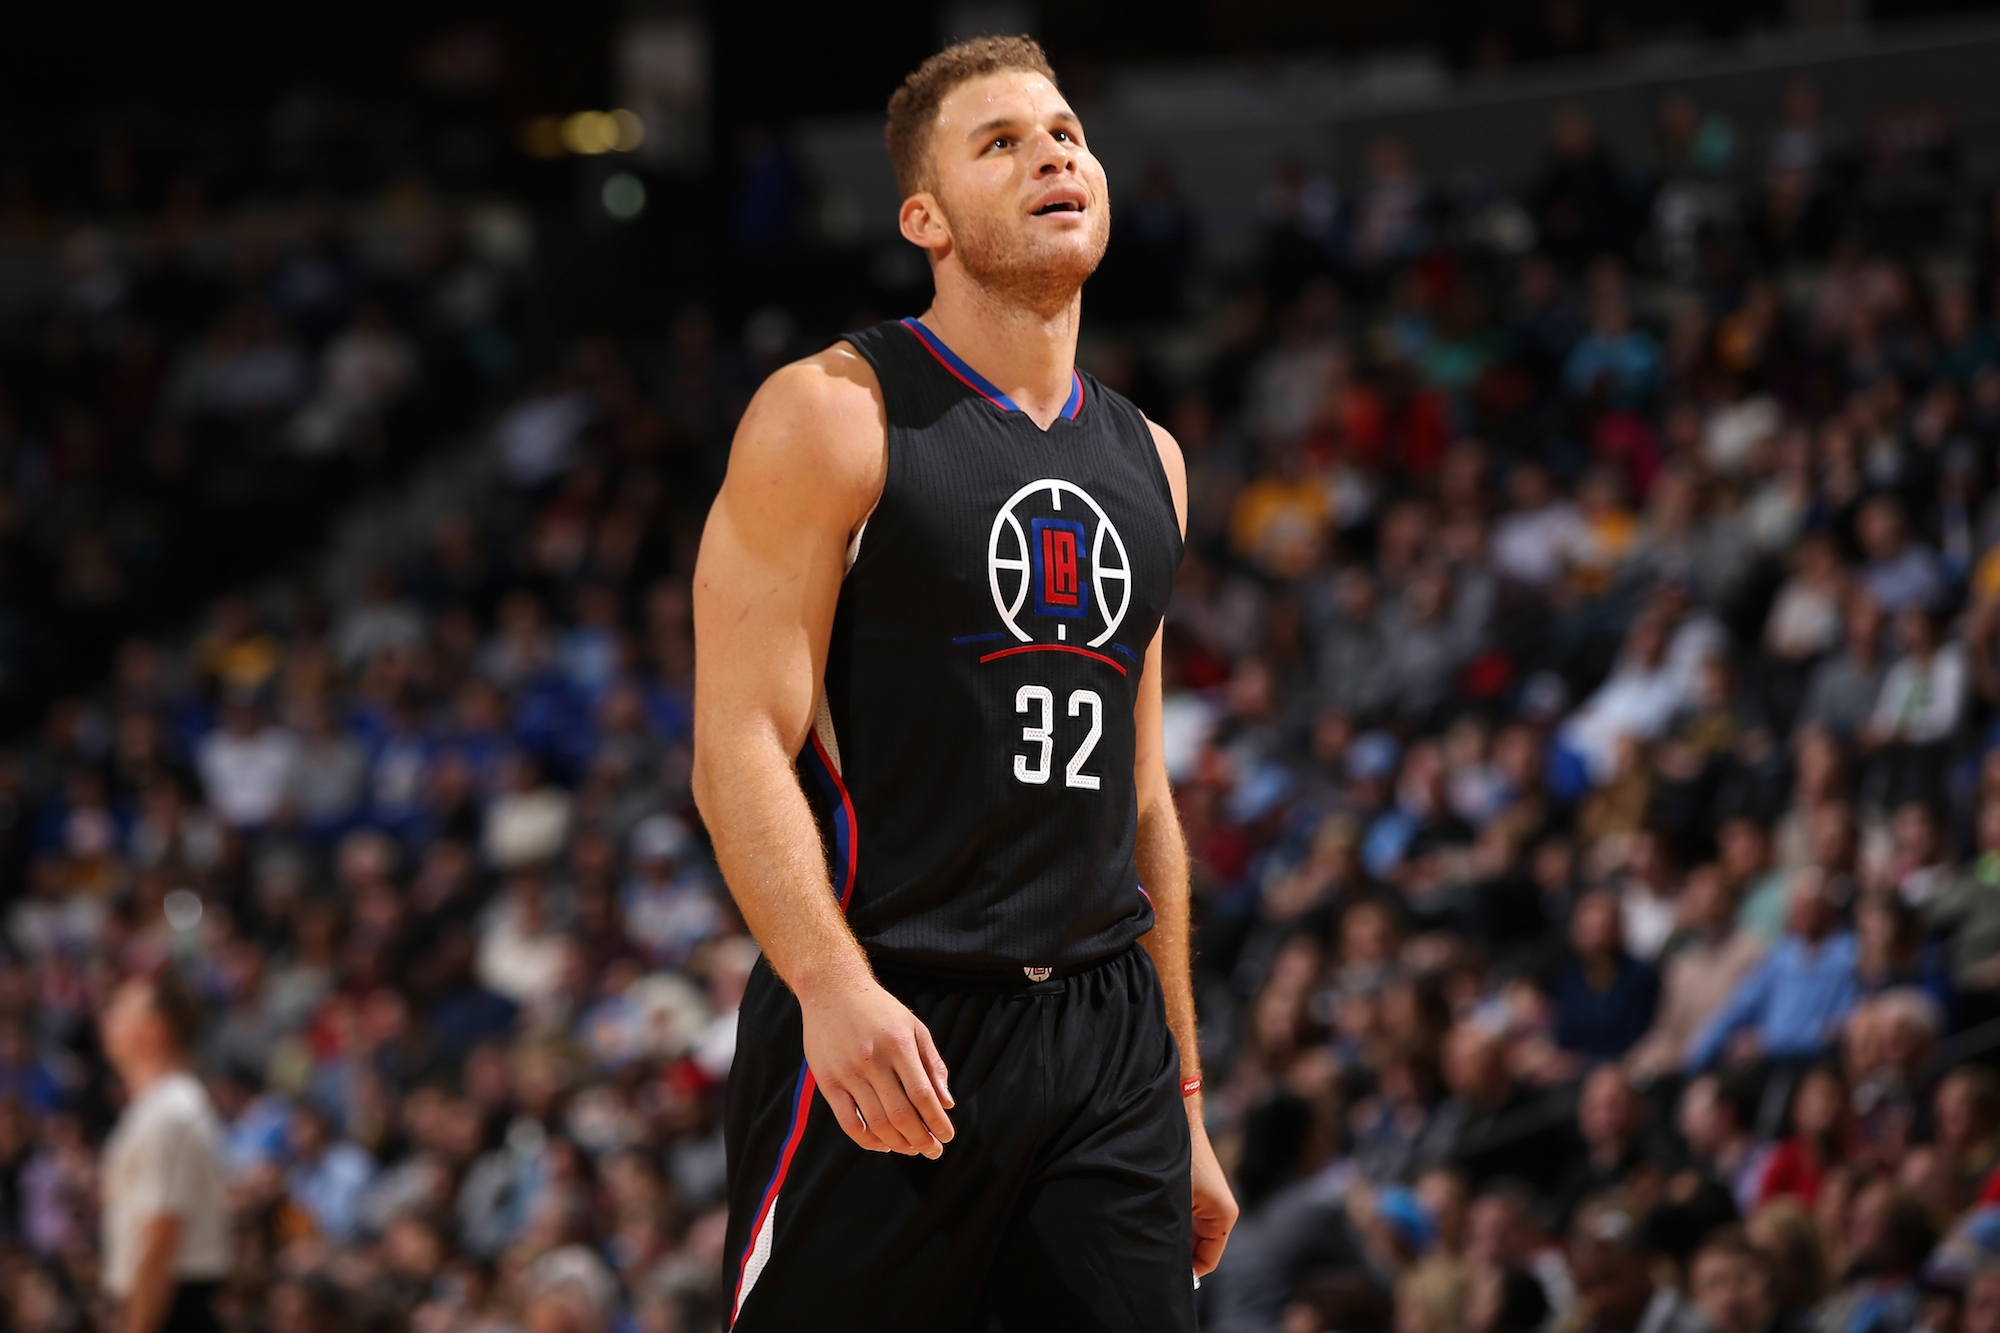 La clippers the impact of blake griffins surgery on the team foxsports com - Most Surprising And Disappointing Nba Players This Season Yardbarker Com